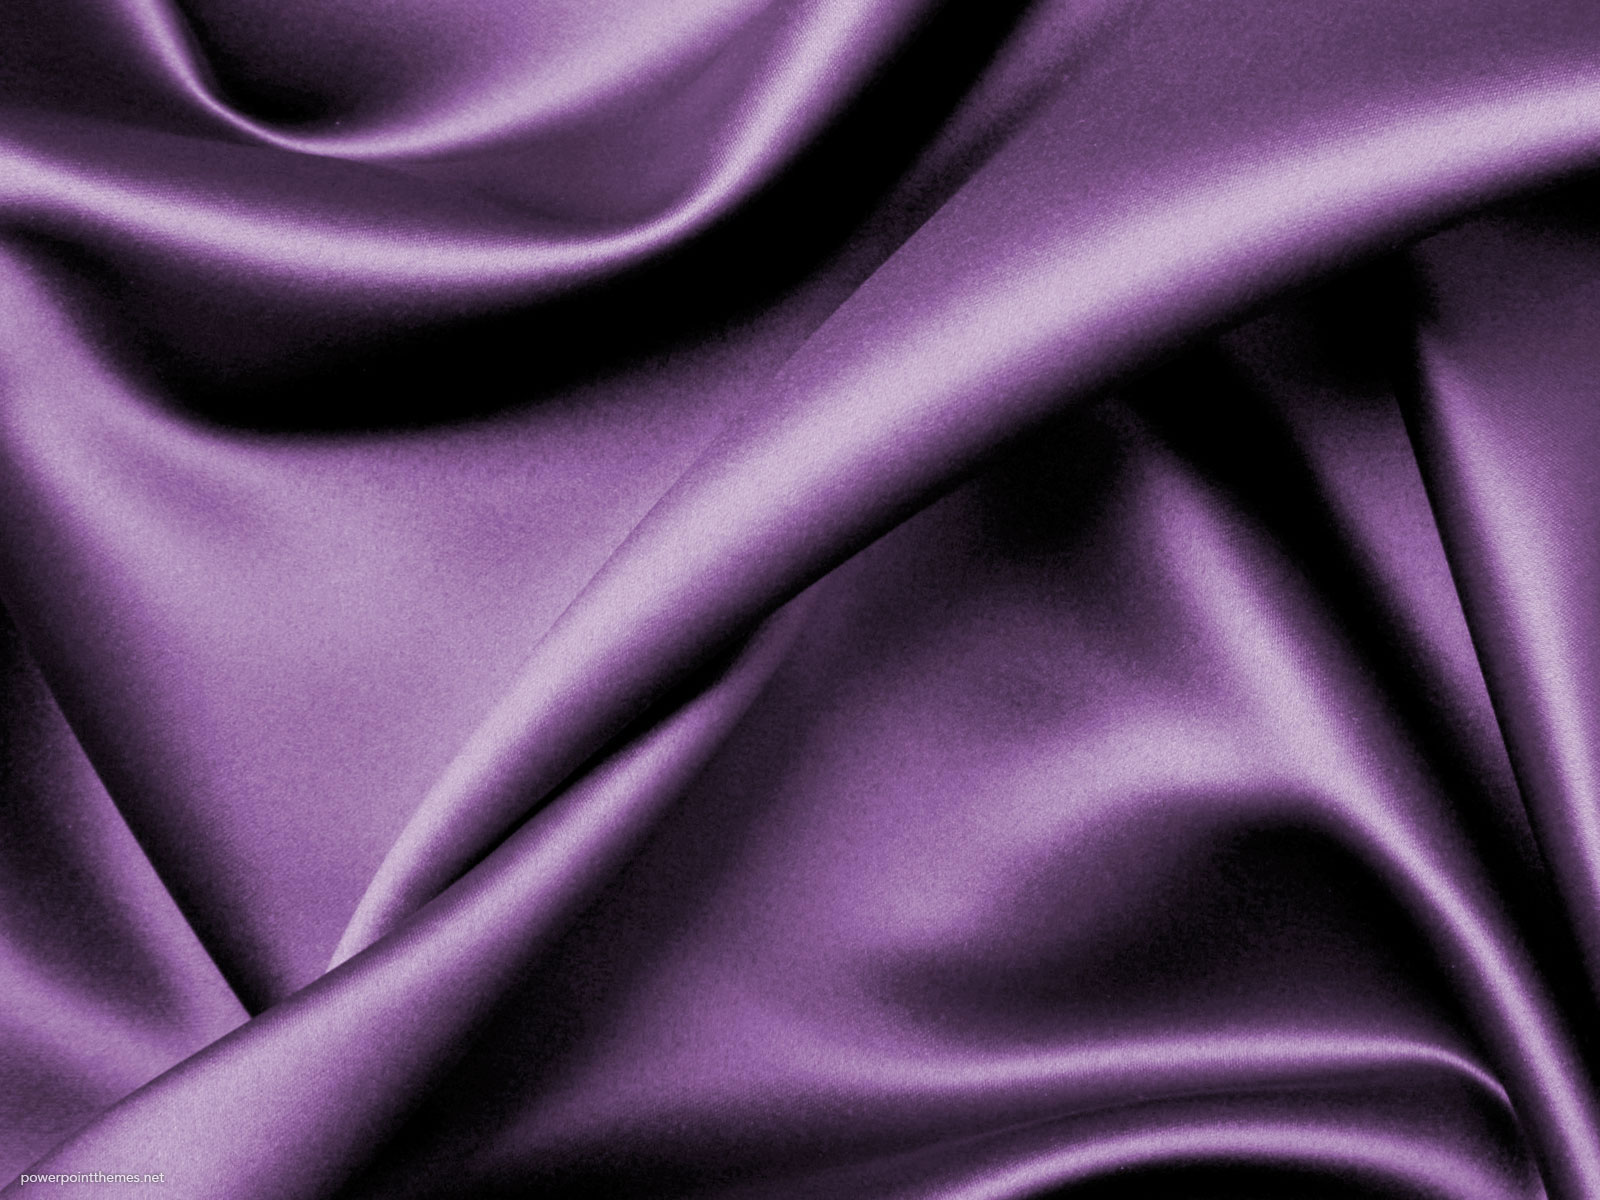 satin backgrounds image art - photo #34